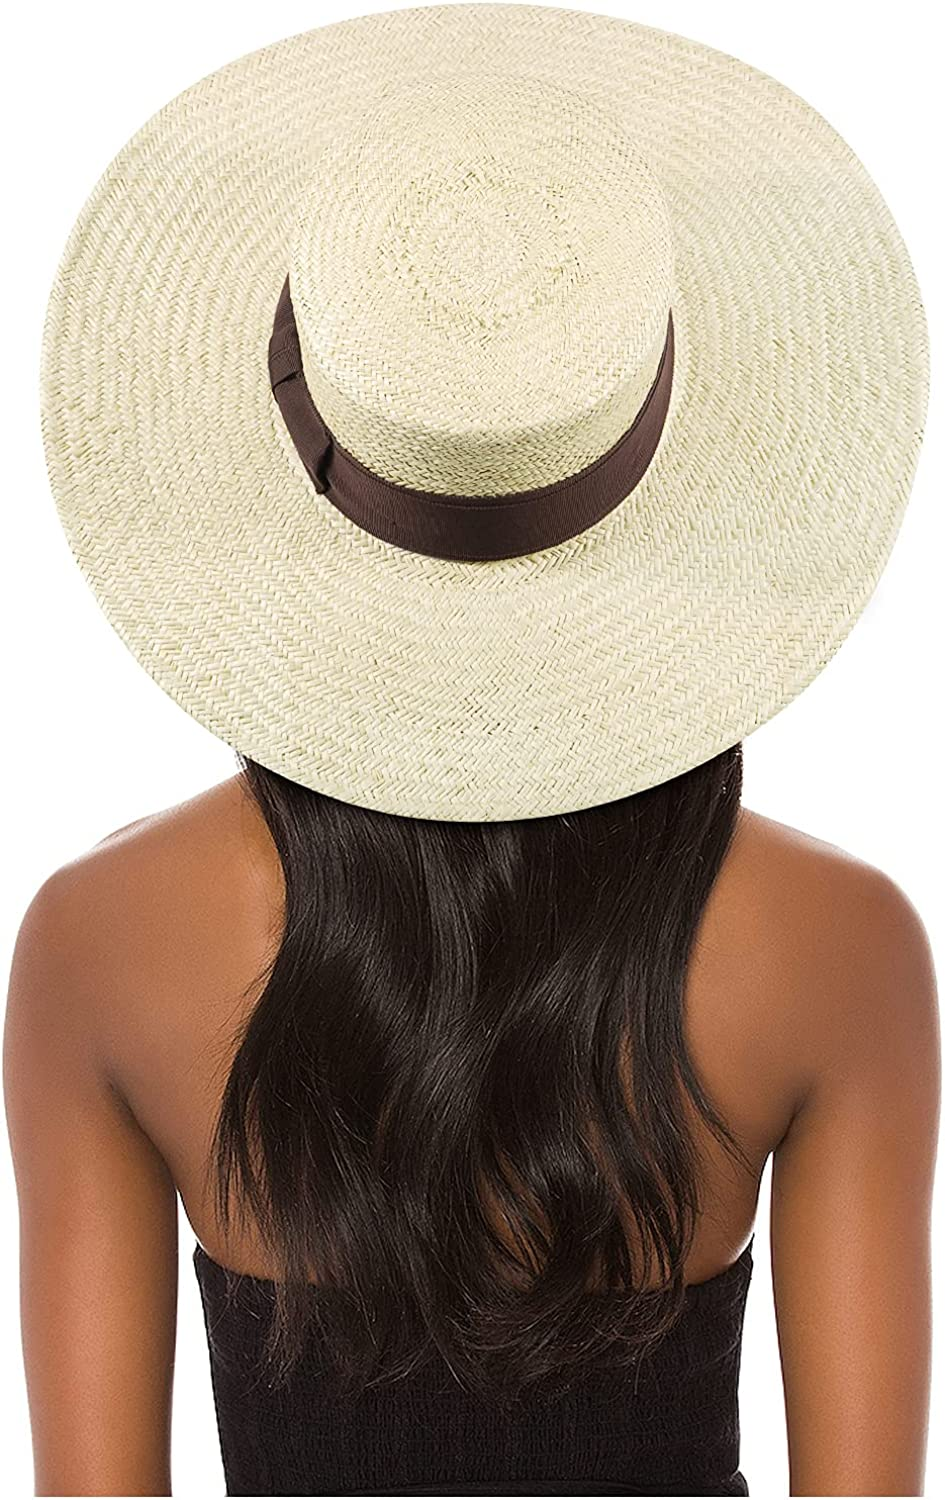 FEMSÉE Straw Beach Hat - Sun Hats for Women and Men Flat Top Classic Boater Hat